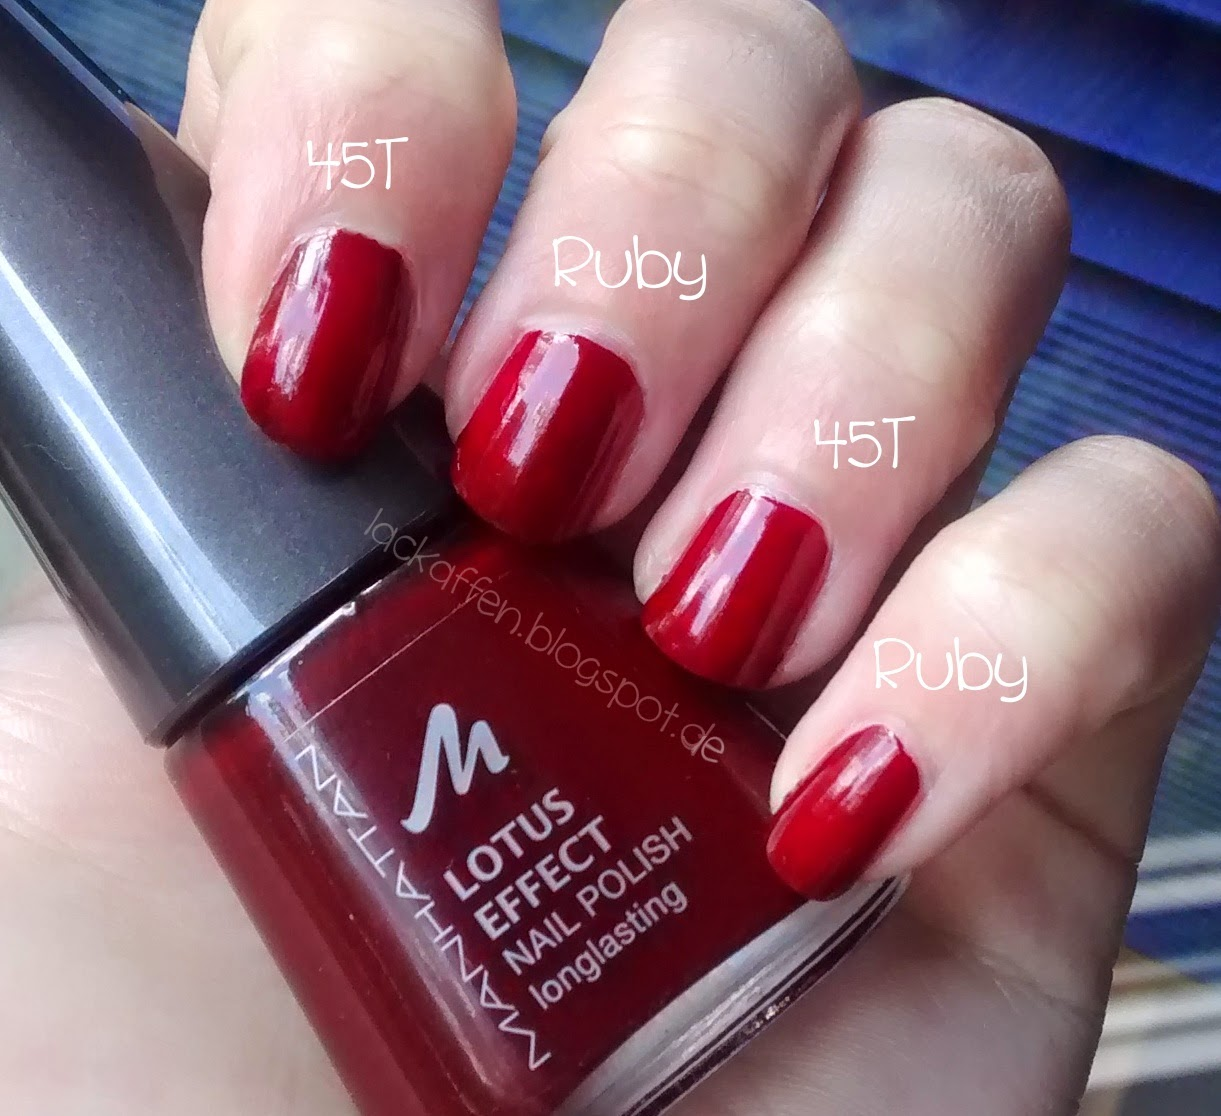 Lackaffen: Dupetest in Rot: Manhattan vs. Orly